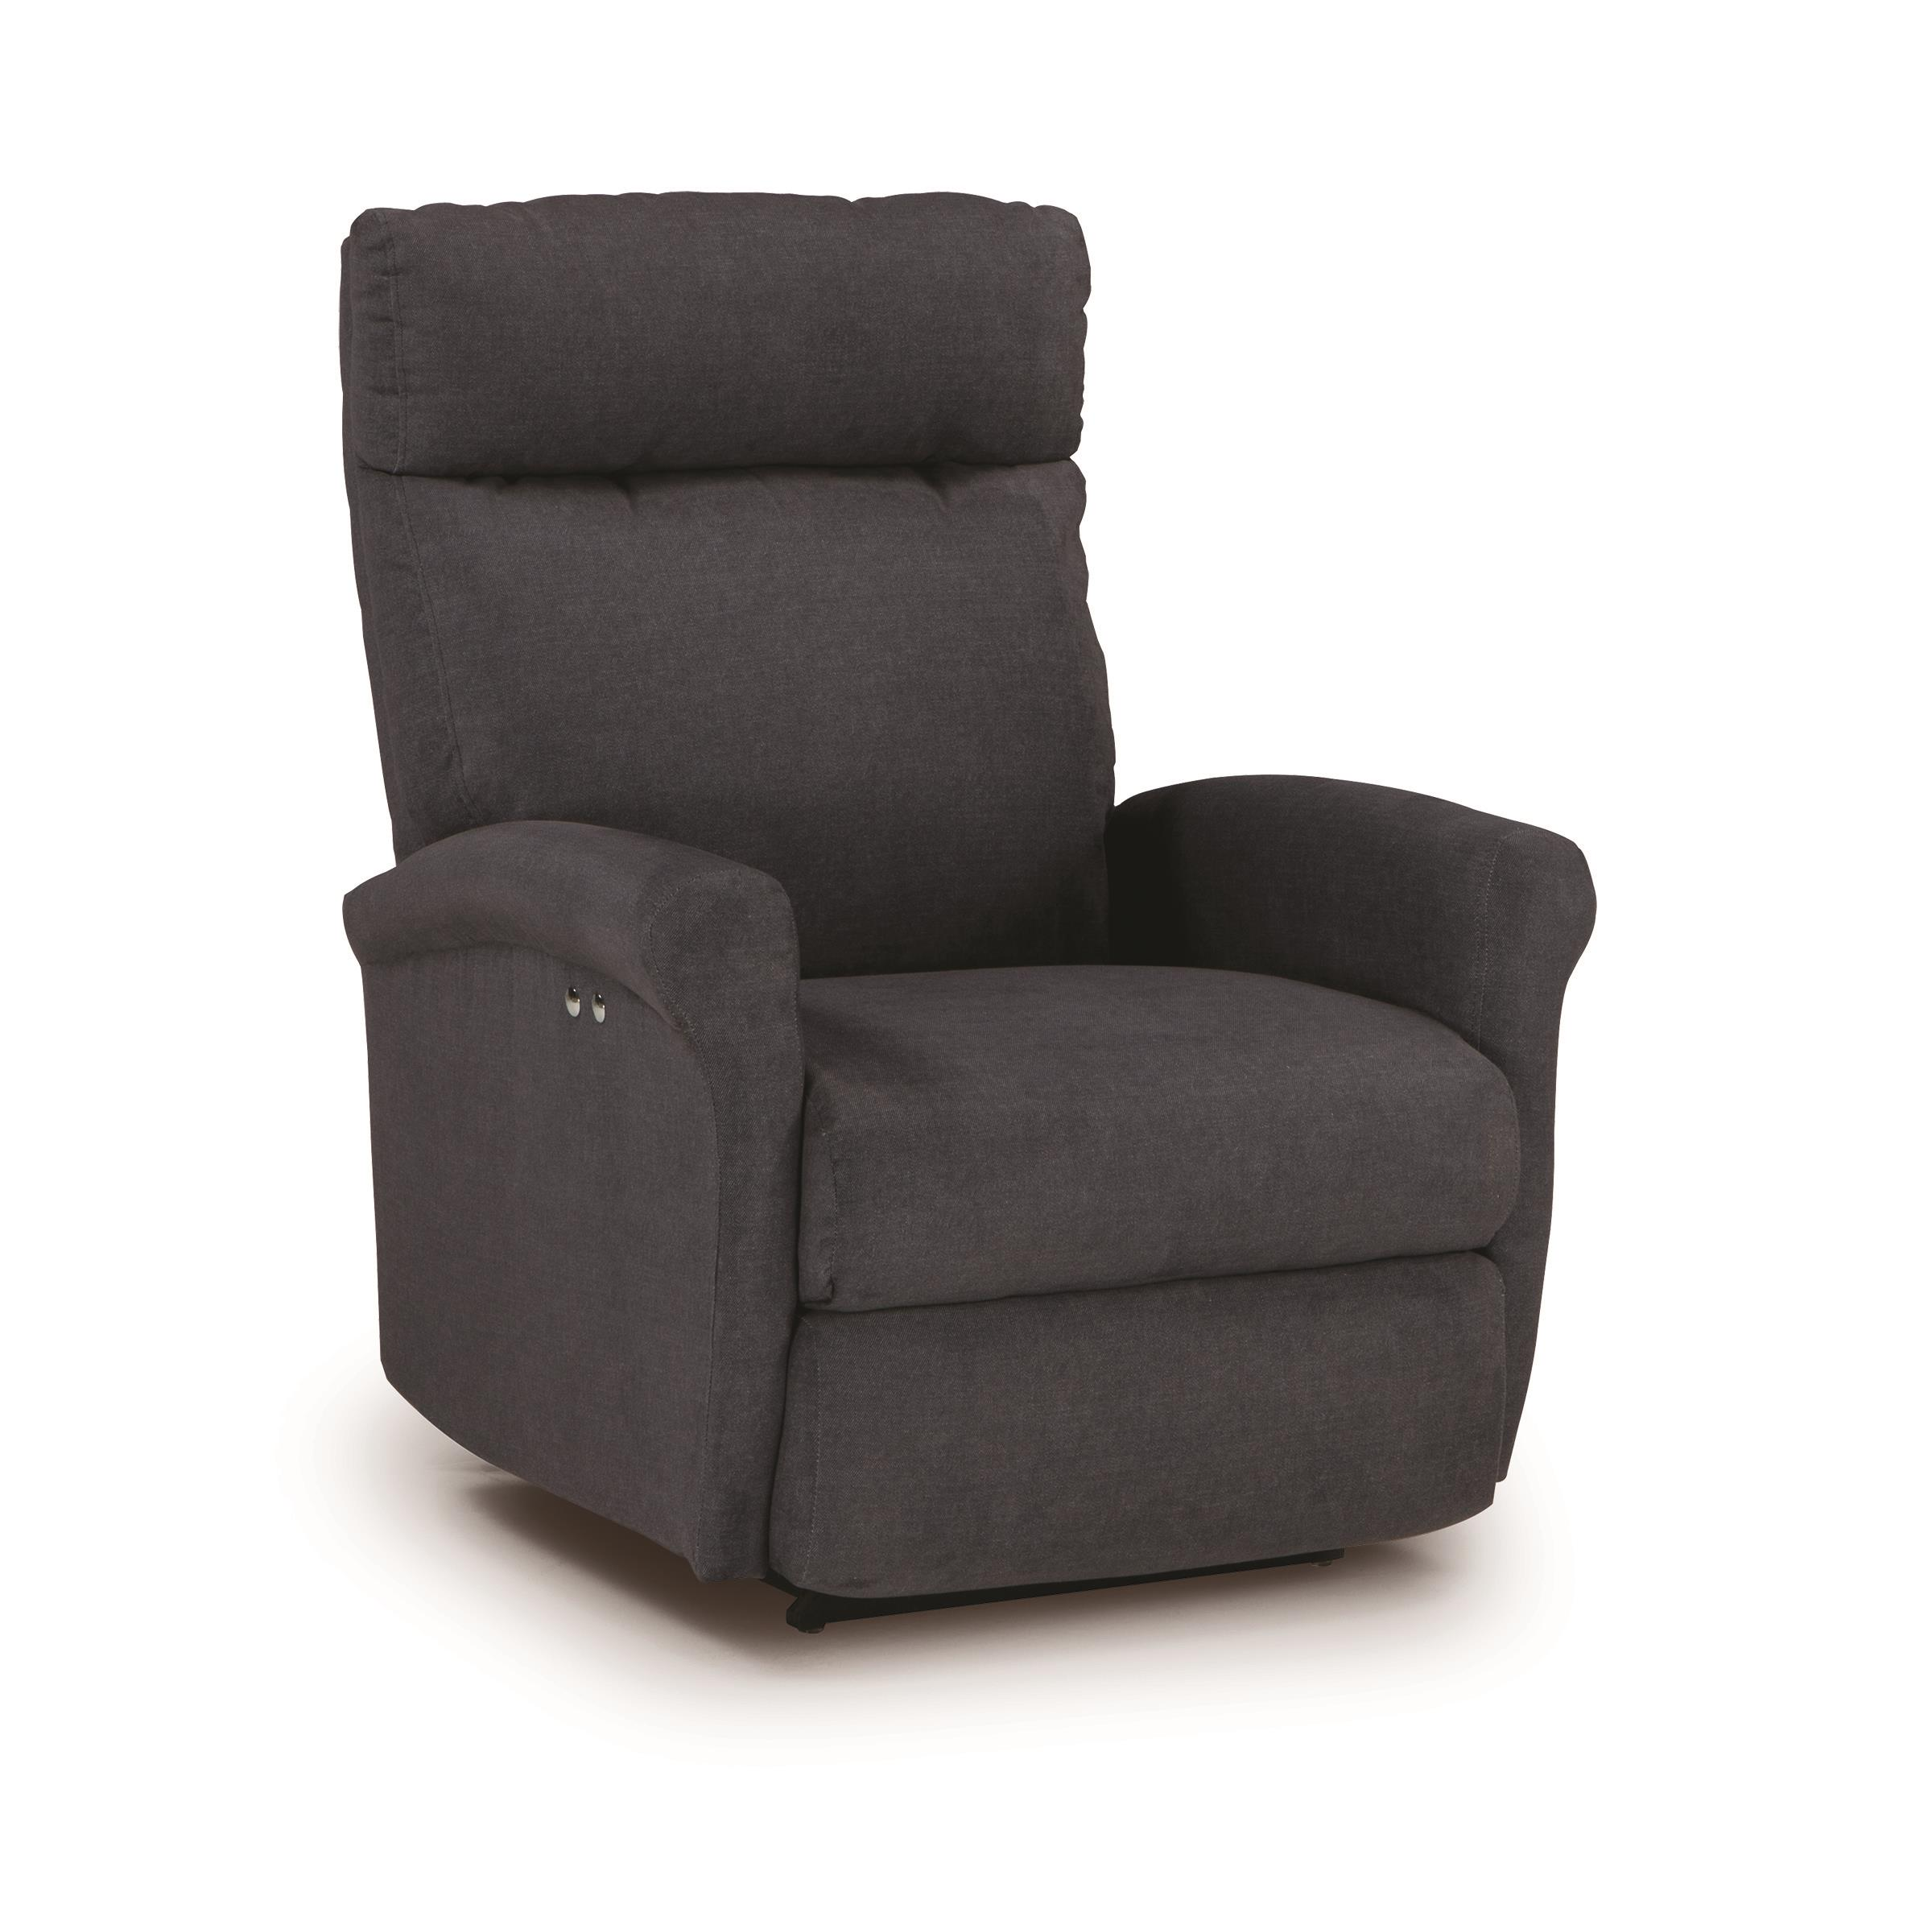 Best Home Furnishings Recliners - Petite Swivel Rocking Recliner - Item Number: 1N09-21472